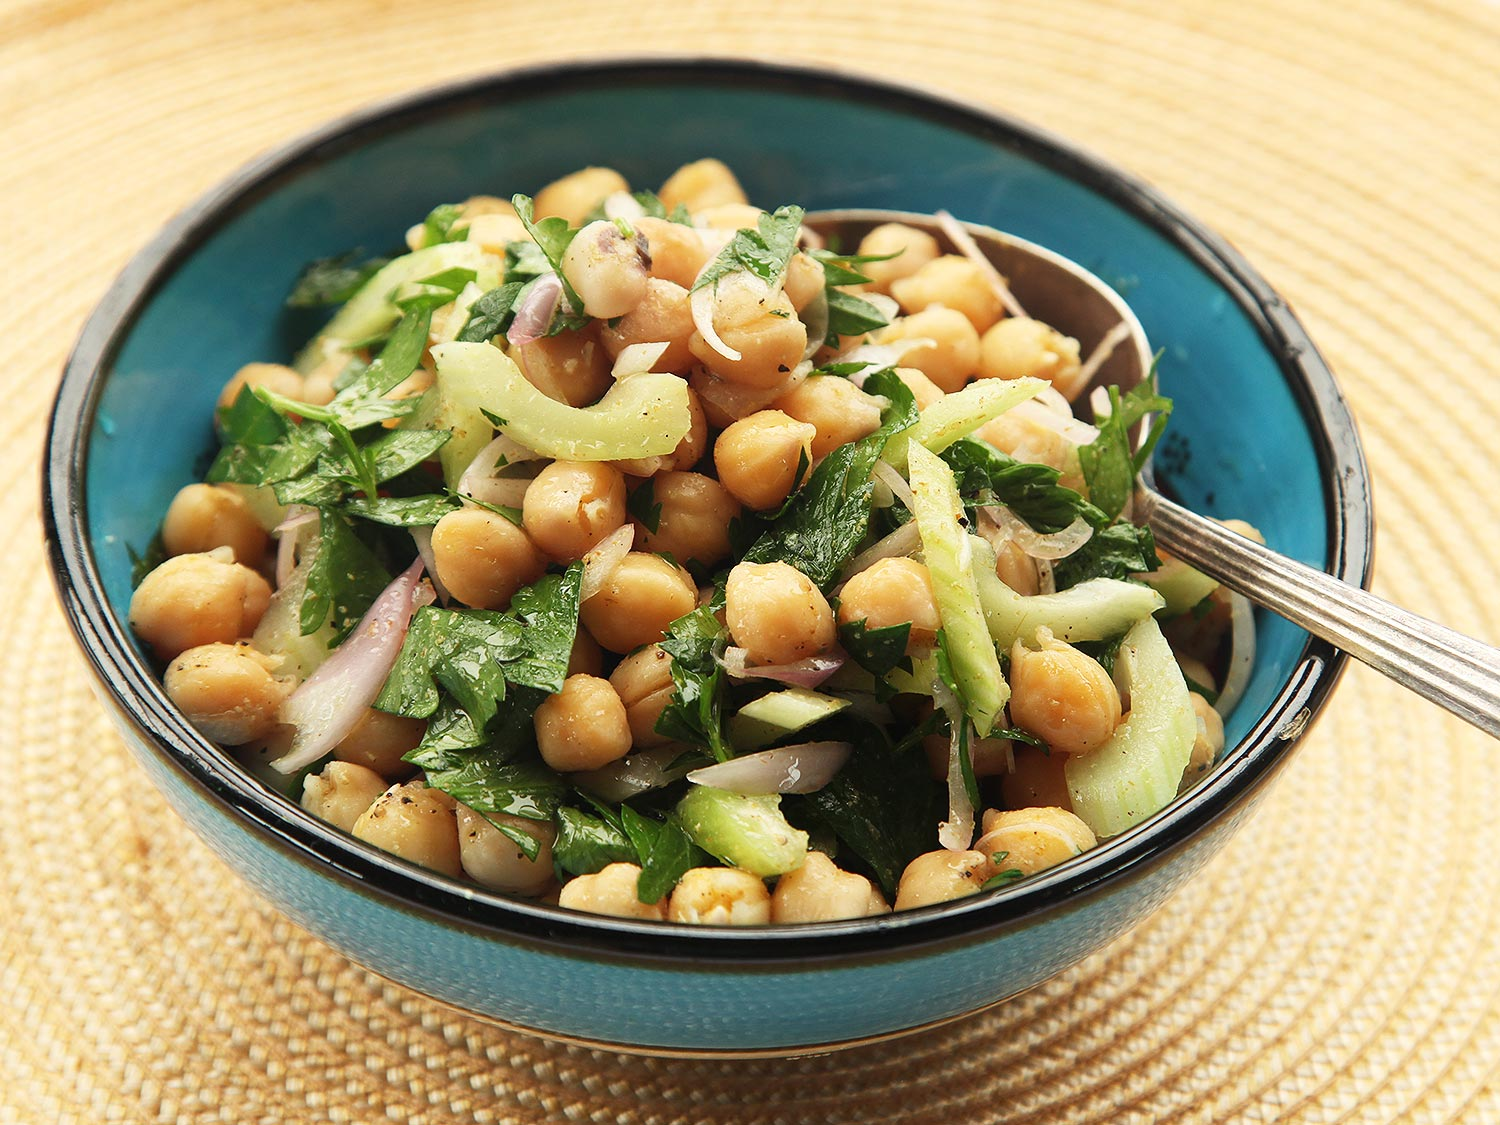 Make-Ahead Chickpea Salad With Cumin and Celery Recipe